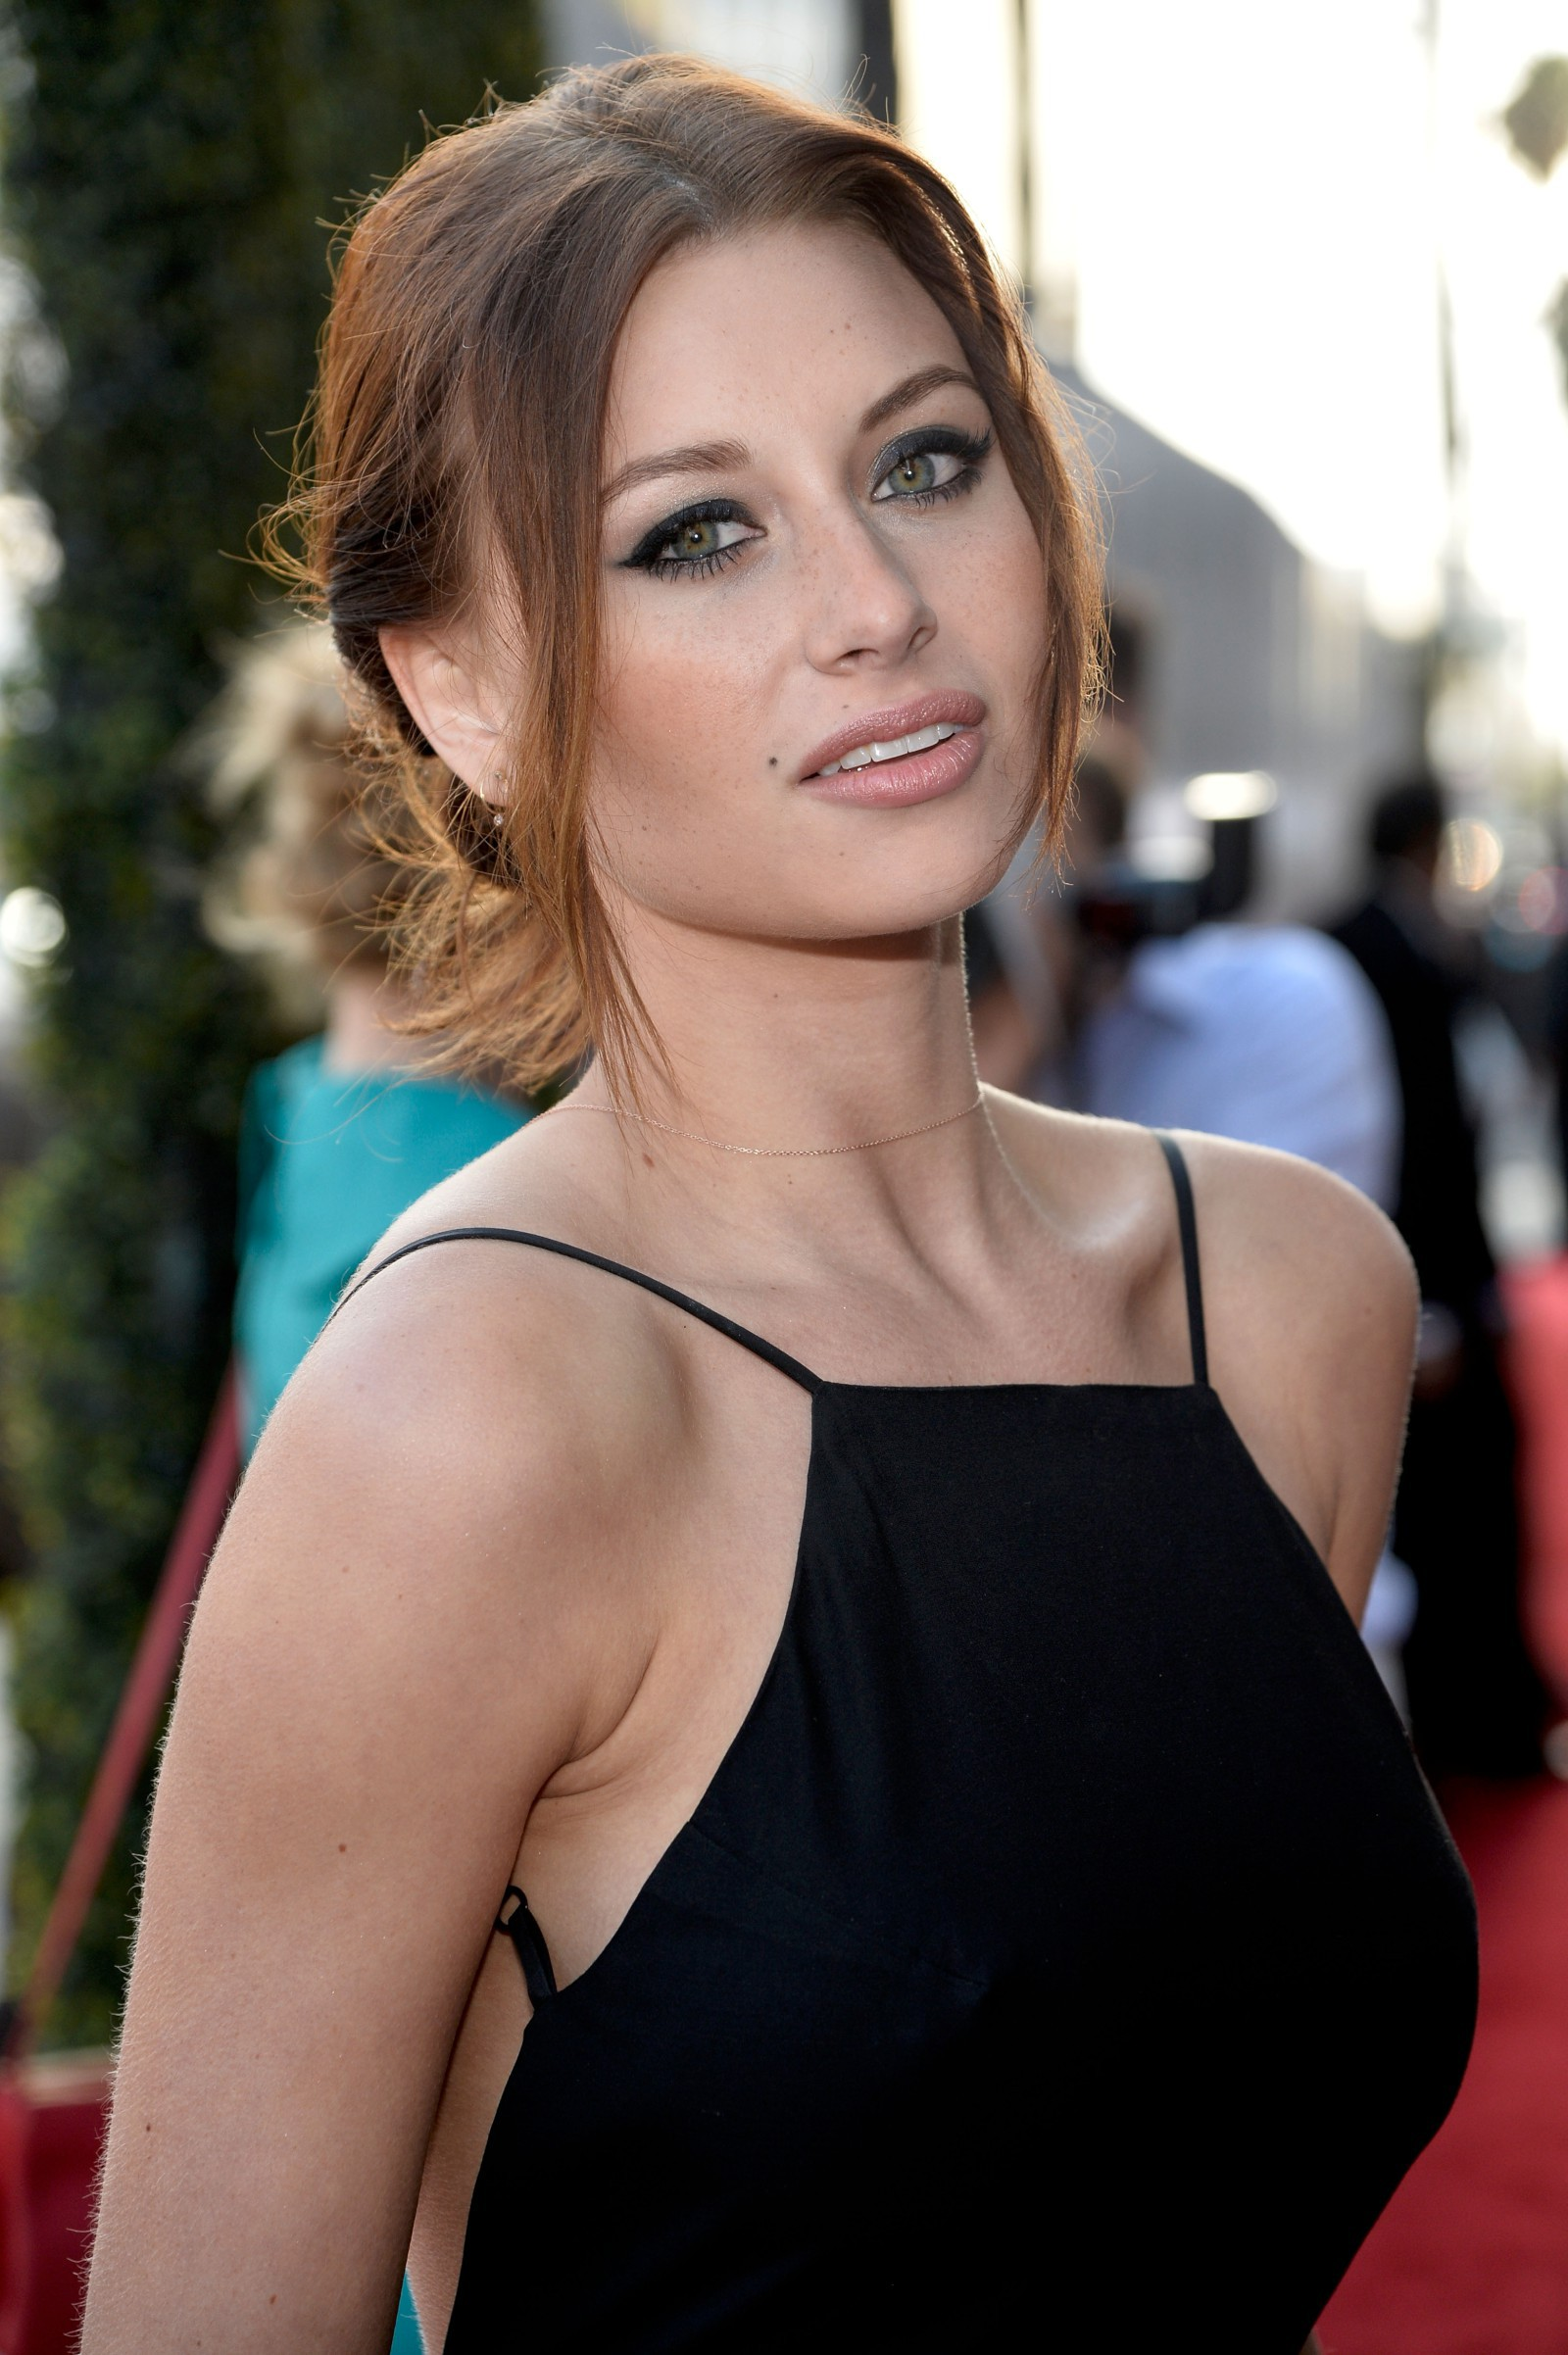 Leaked Aly Michalka nudes (45 photo), Ass, Leaked, Instagram, bra 2006